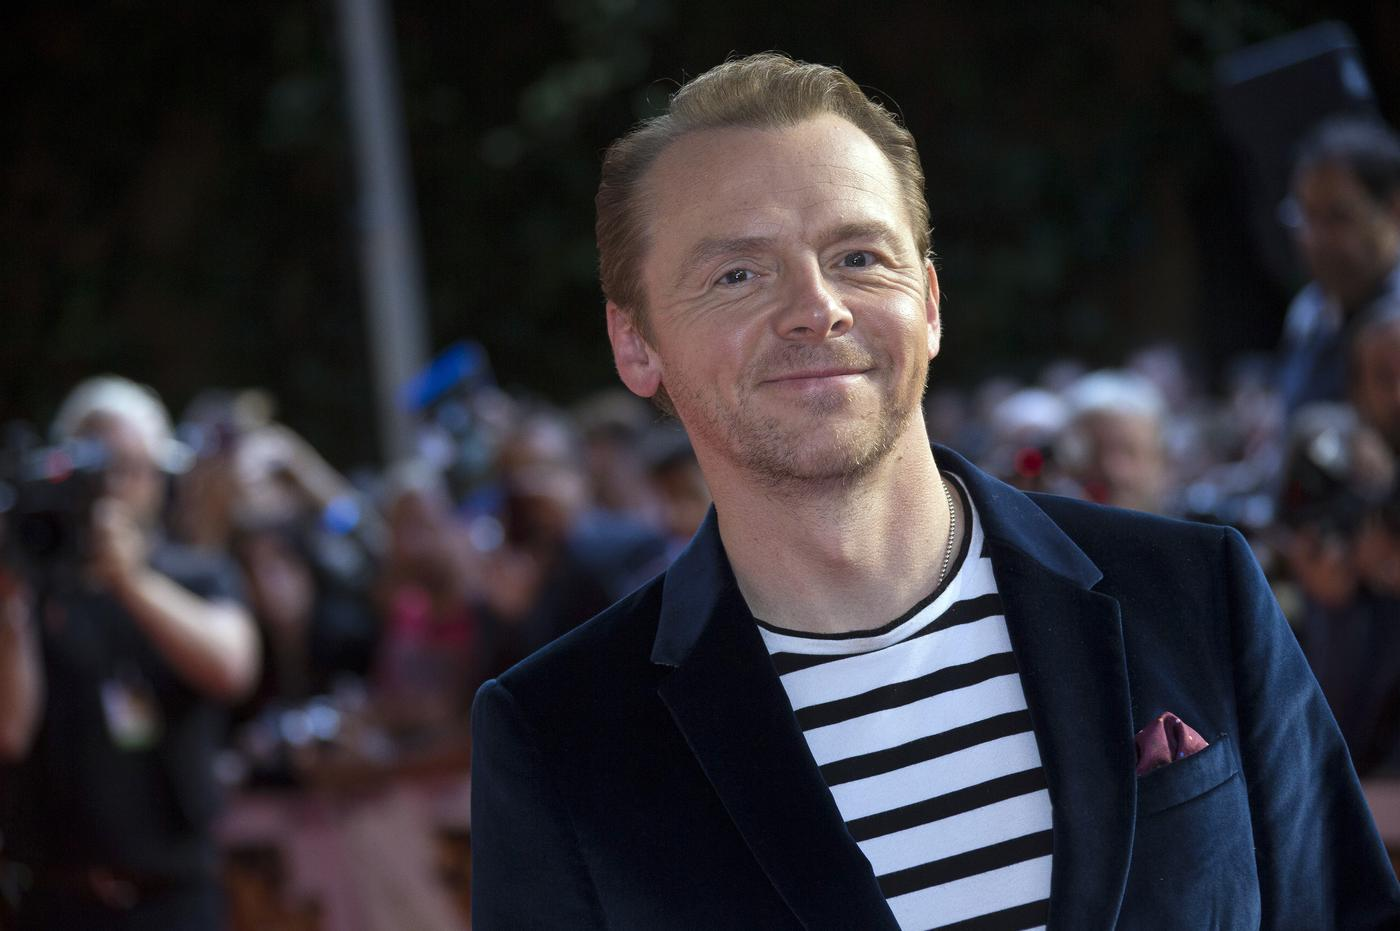 Simon Pegg is in everything but don't worry, he WON'T be in Game of Thrones